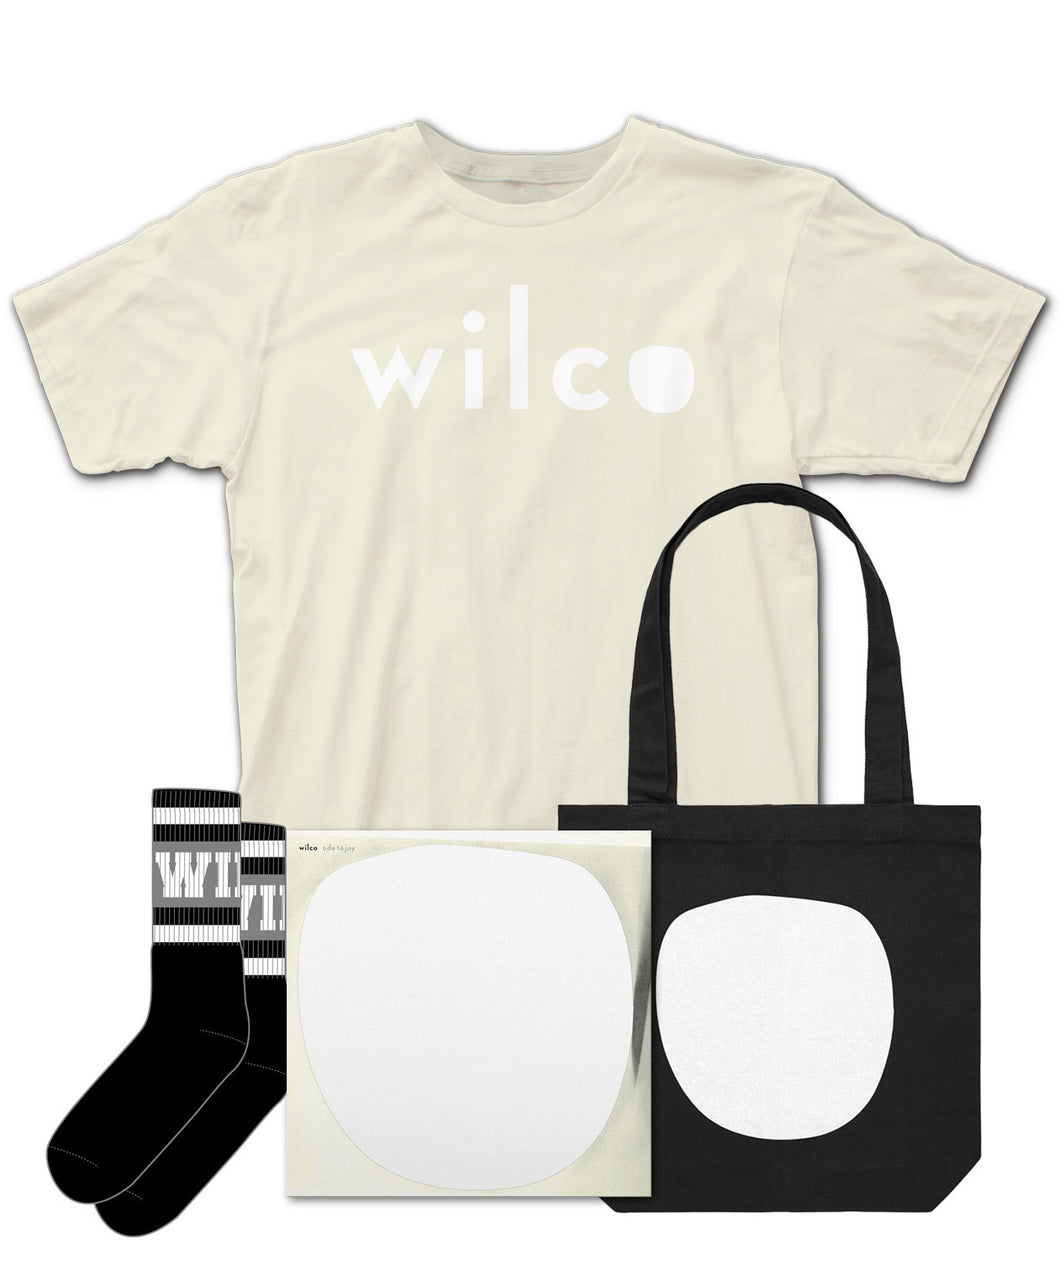 Ode to Joy LP + T-shirt + Tote + Socks